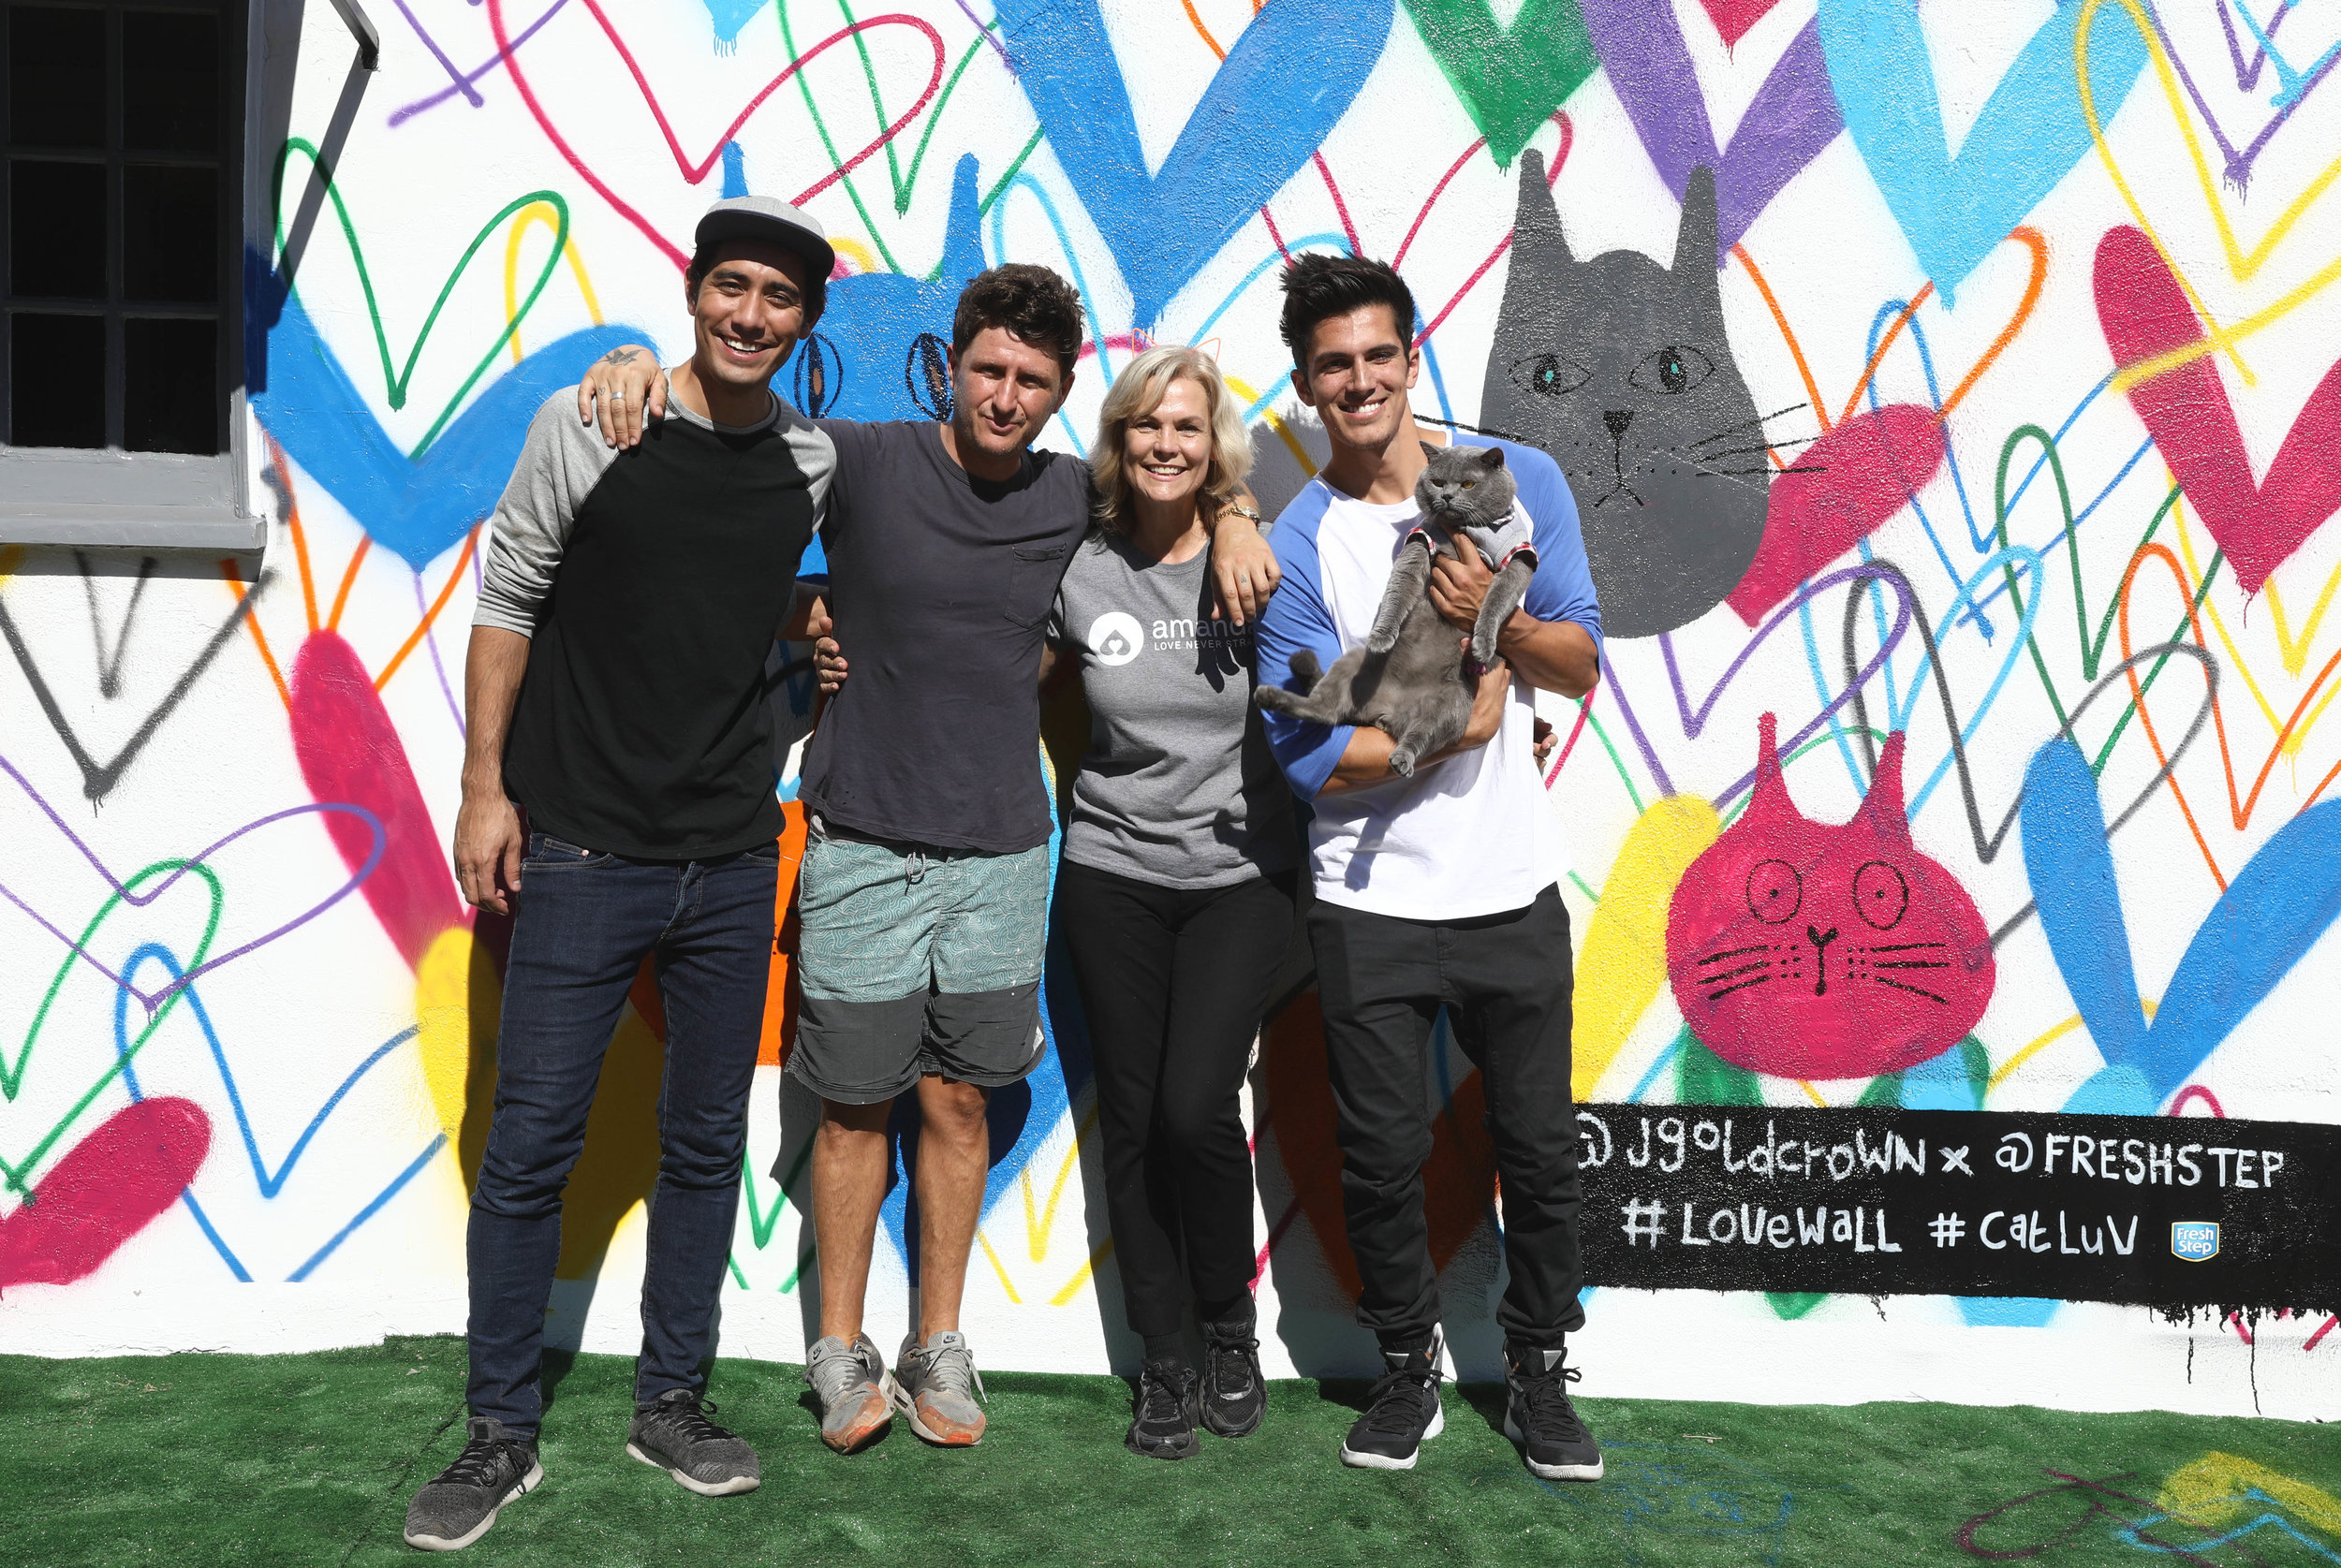 Zach King, James Goldcrown, Teri Austin of the Amanda Foundation, Aaron Benetiz and Prince Michael the cat